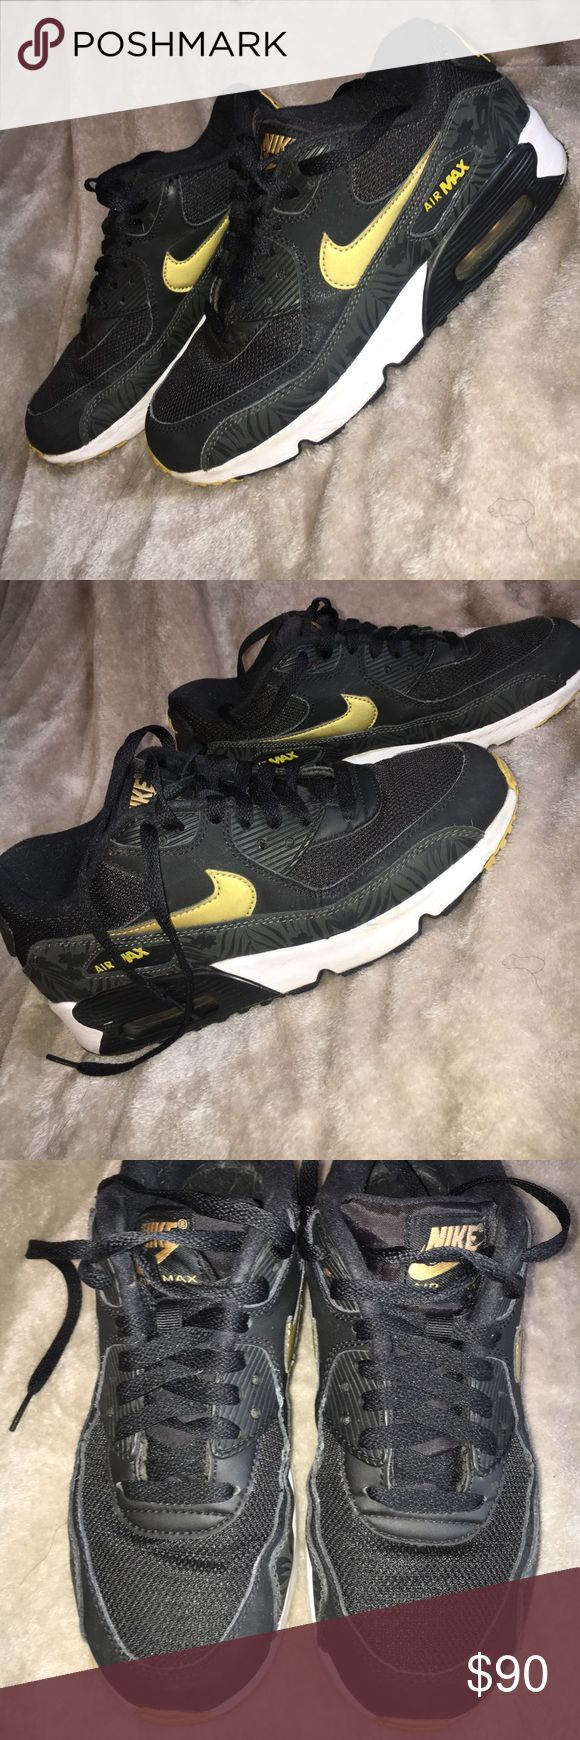 Nike air max 90s print black and gold shoes 7y In great pre owned condition size 7 y Nike Shoes Athletic Shoes